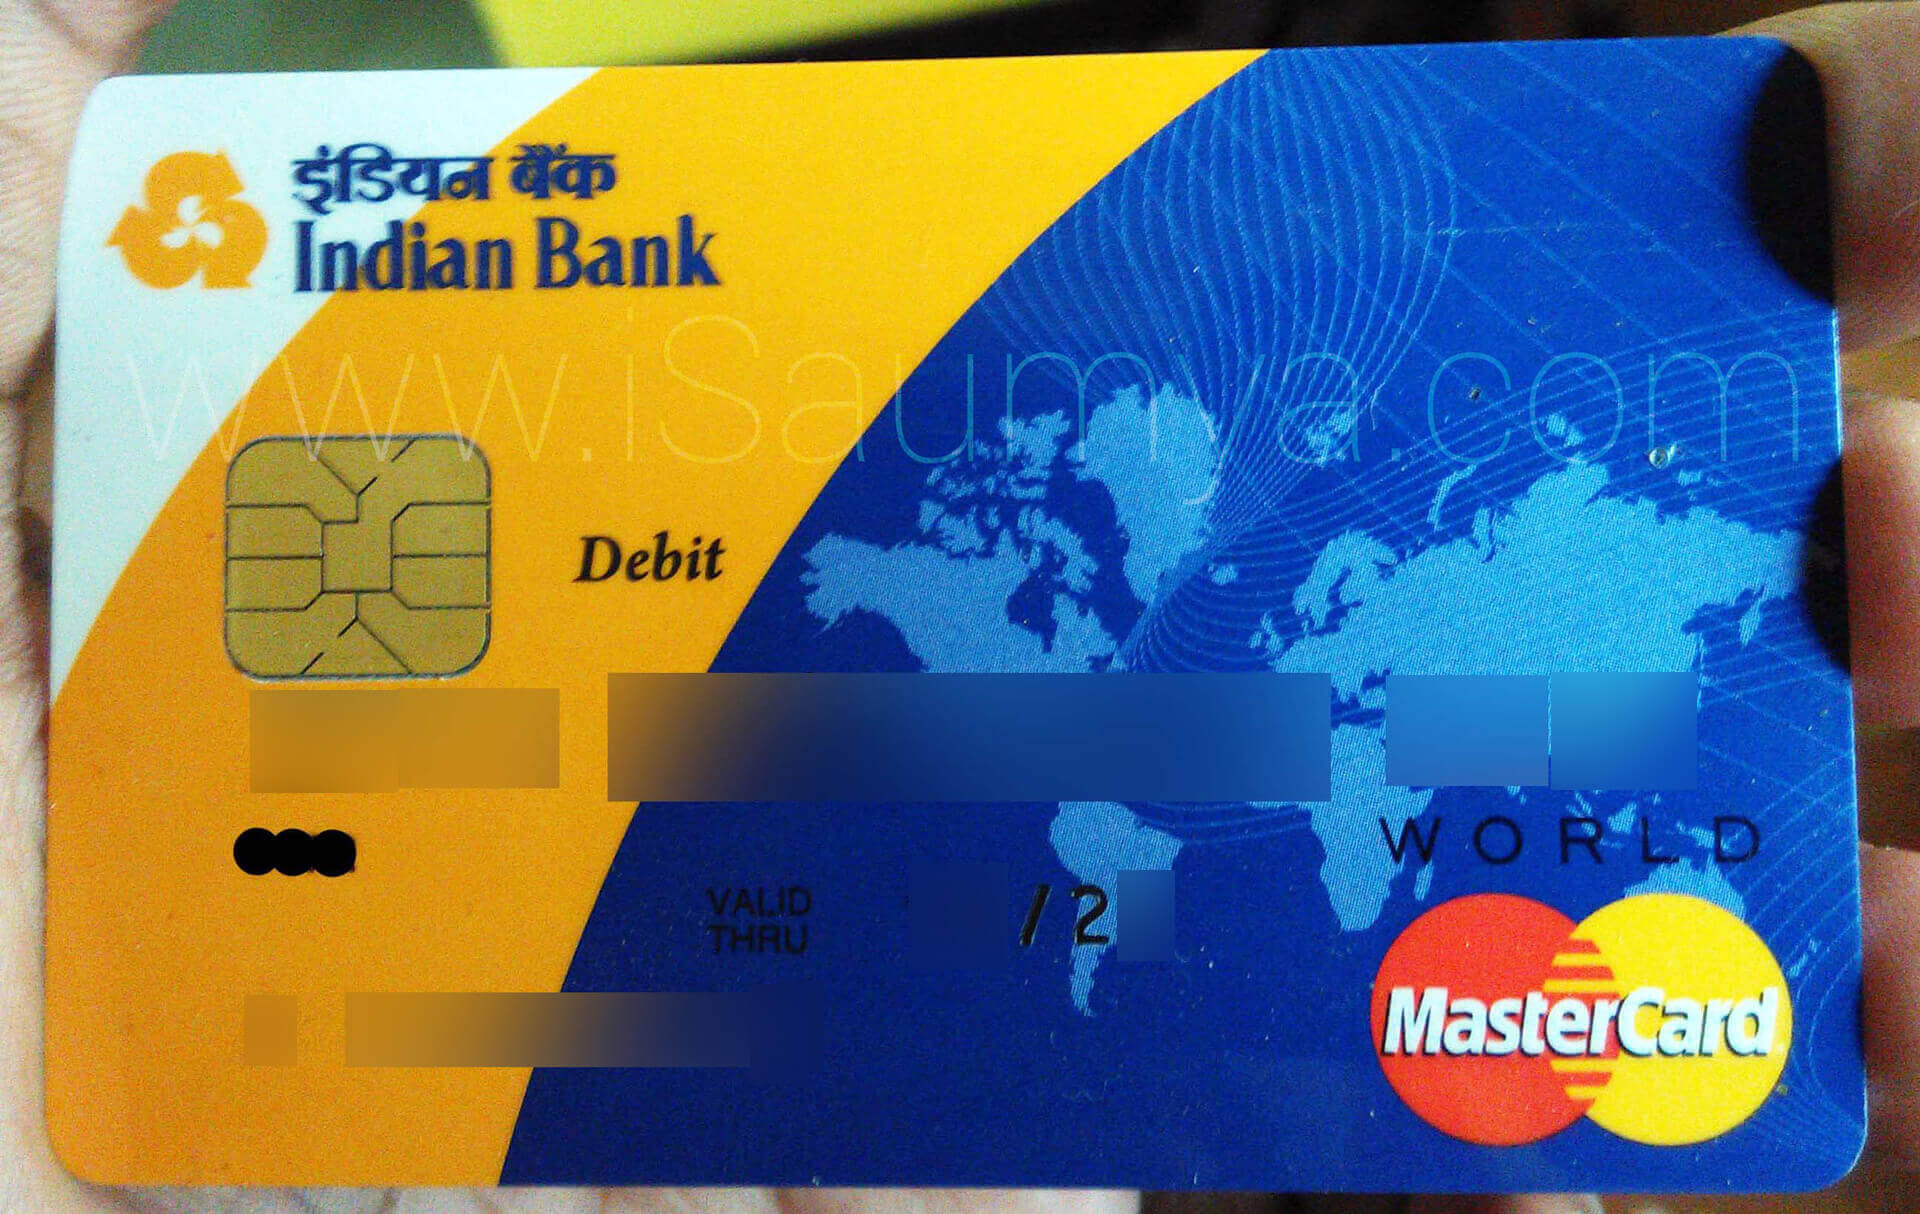 Indian Bank Visa Credit Card Image